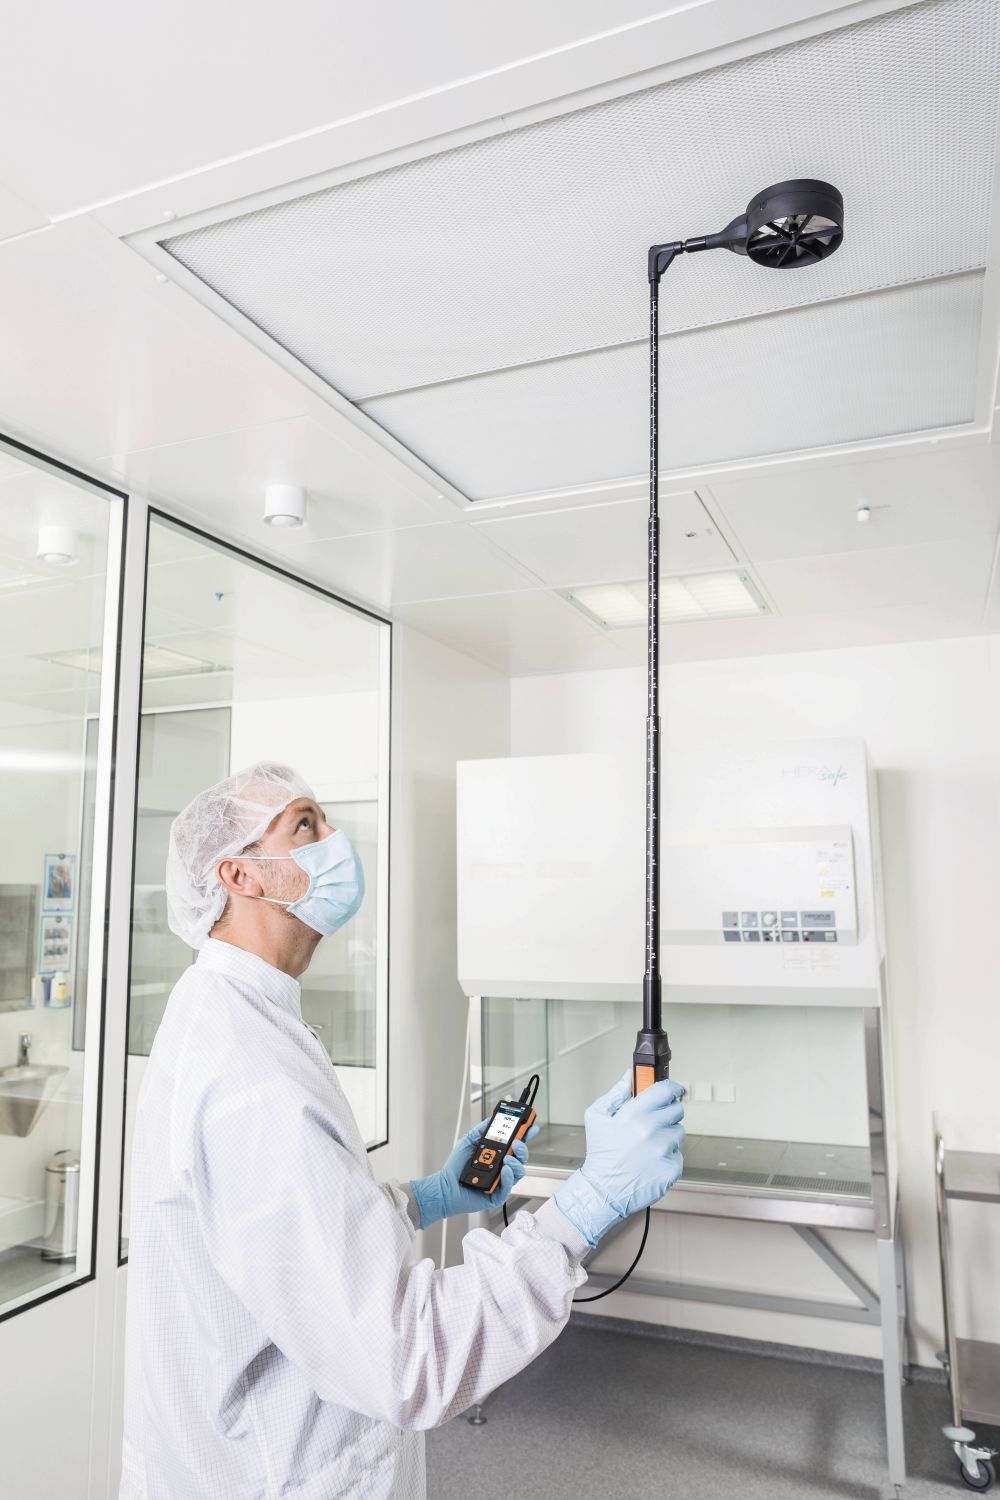 Laminar flow measurements in cleanrooms with high-precision vane probe and testo 440